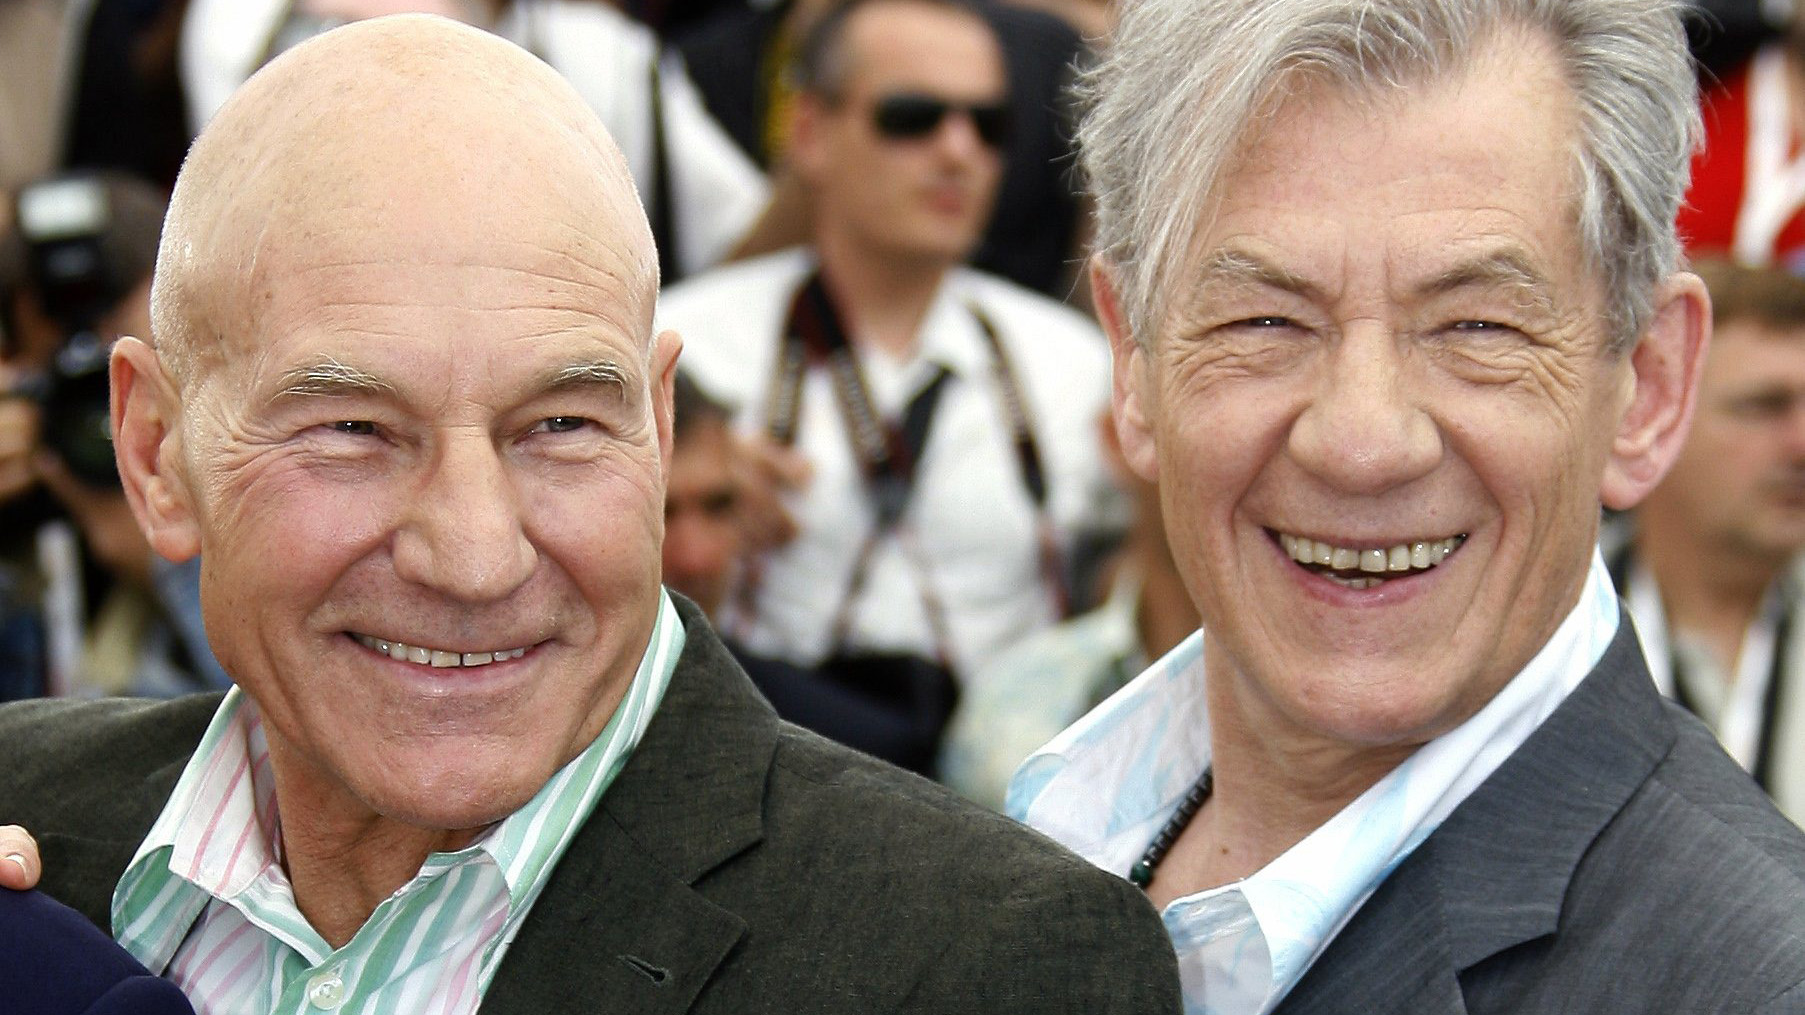 Professor x dating magneto